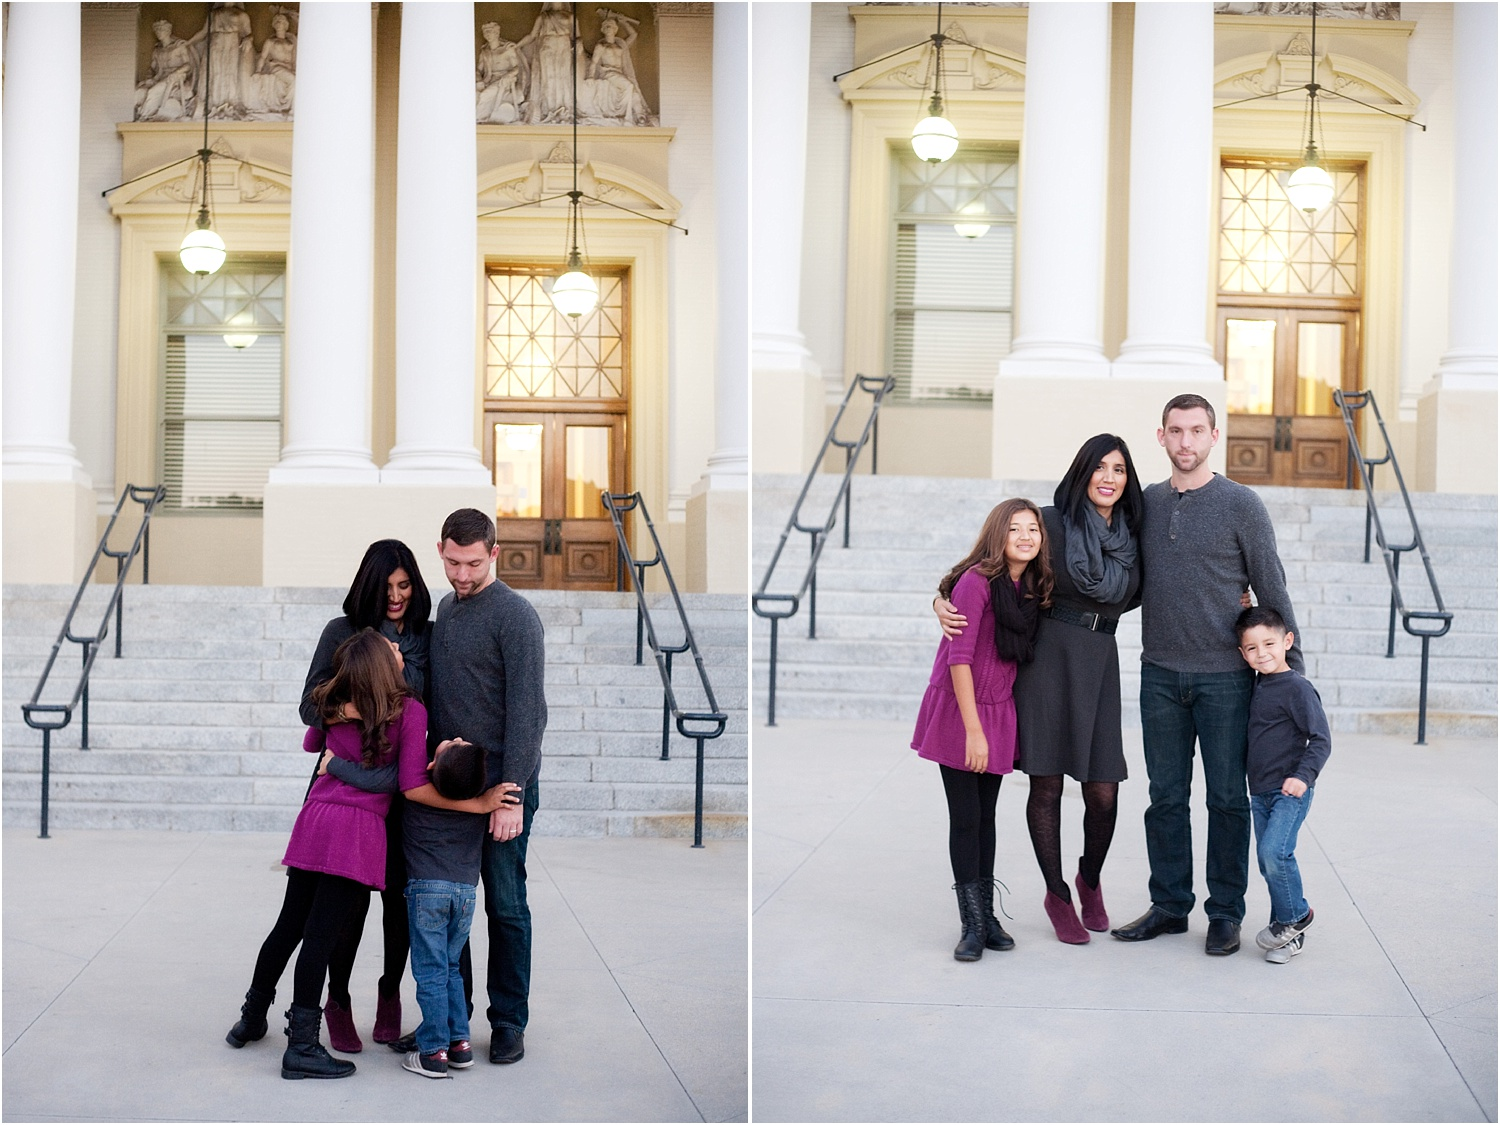 9 - Photographing Mini-Sessions